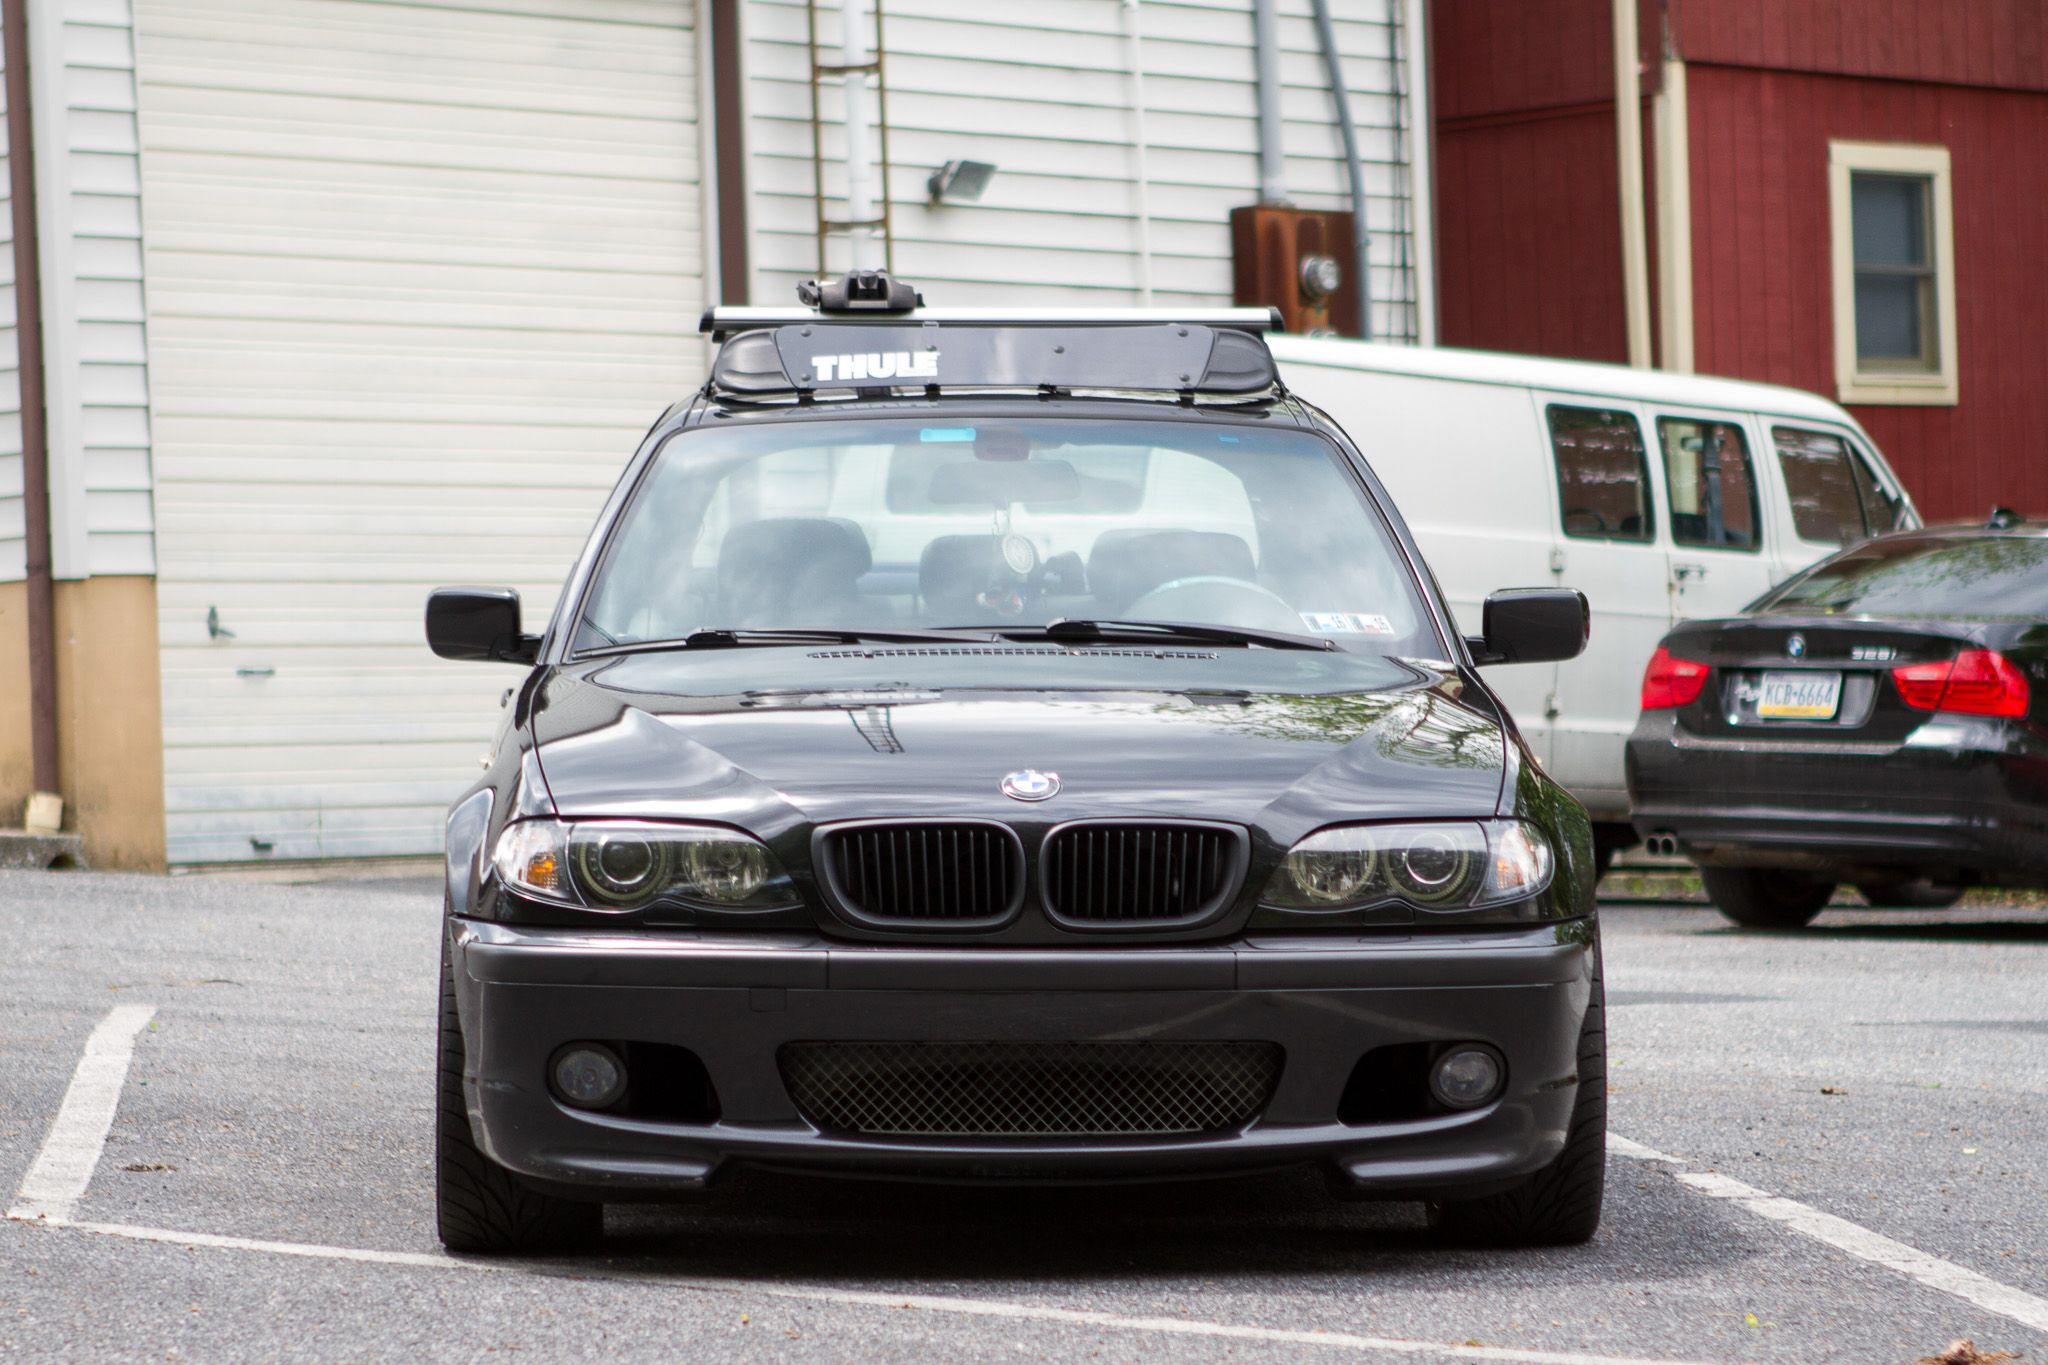 FS: OEM BMW E46 Roof Rack w/ Thule Fairing | Vehicles ...